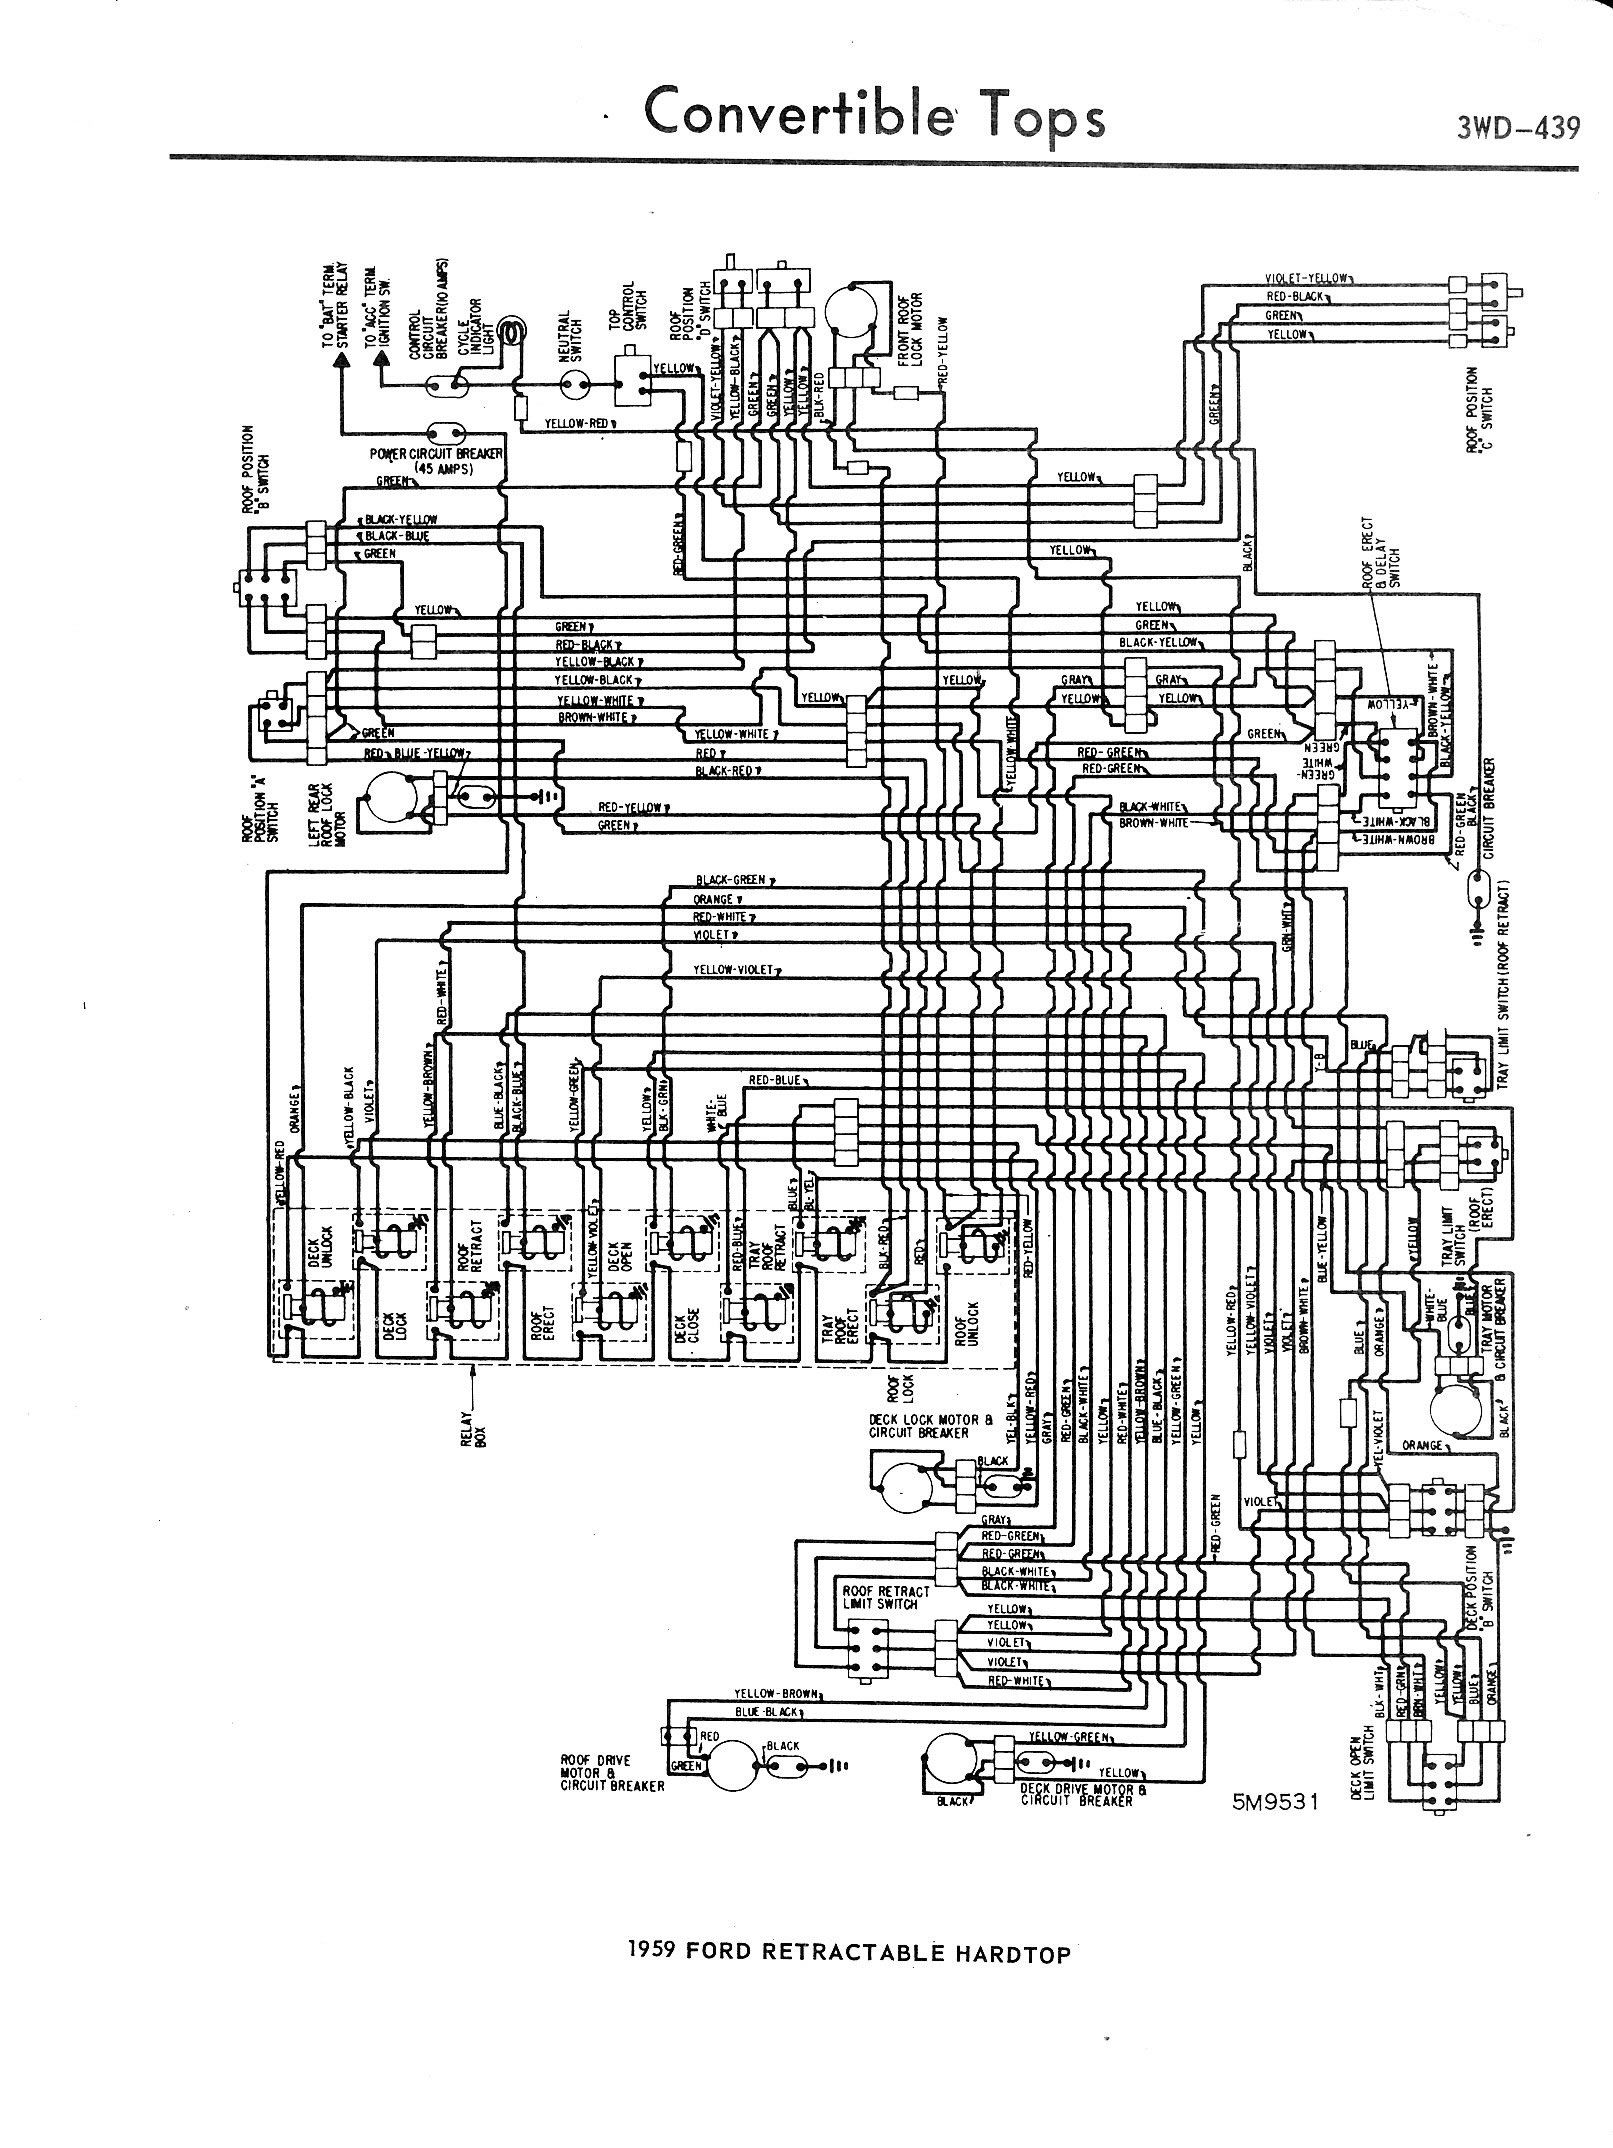 3WD 439 on wiring diagram home